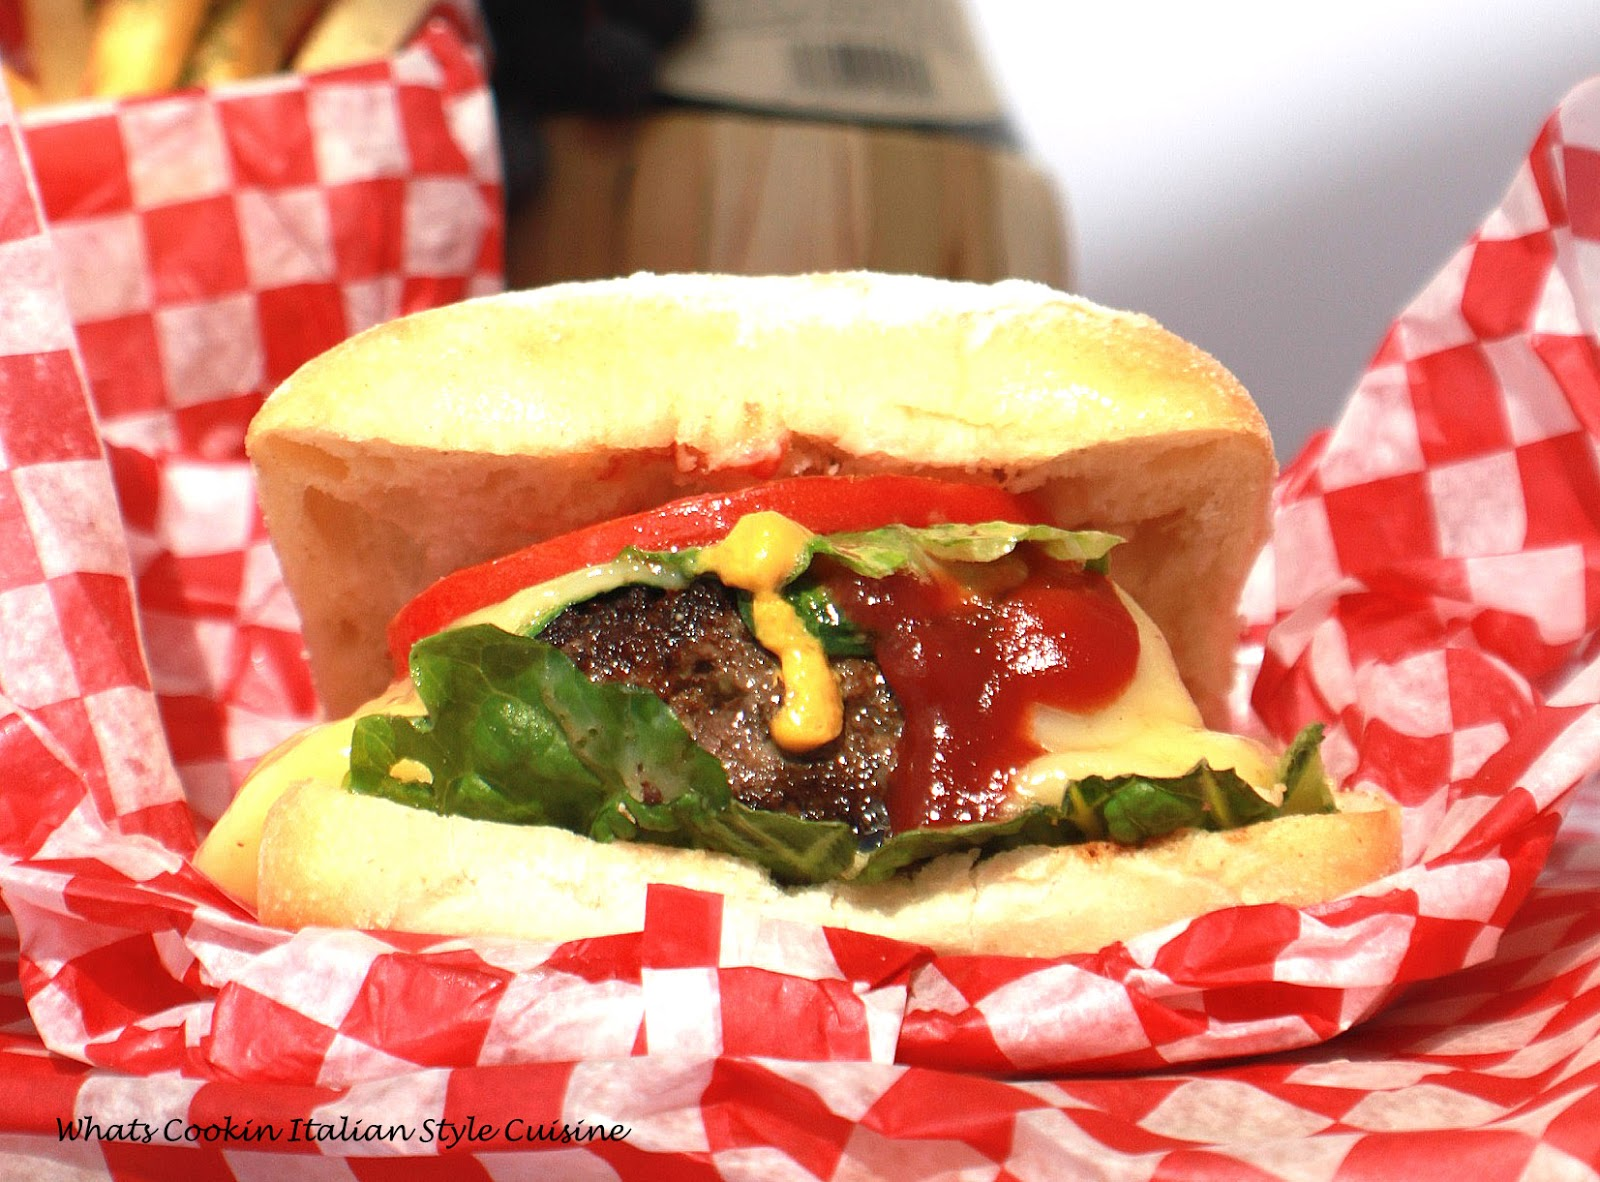 this is an Italian seasoned beef burger in a ciabatta bread roll pillow soft hamburger better than any fast food burger. This burger has lettuce tomato condiments, cheeses, and bursting with the best Italian flavors.